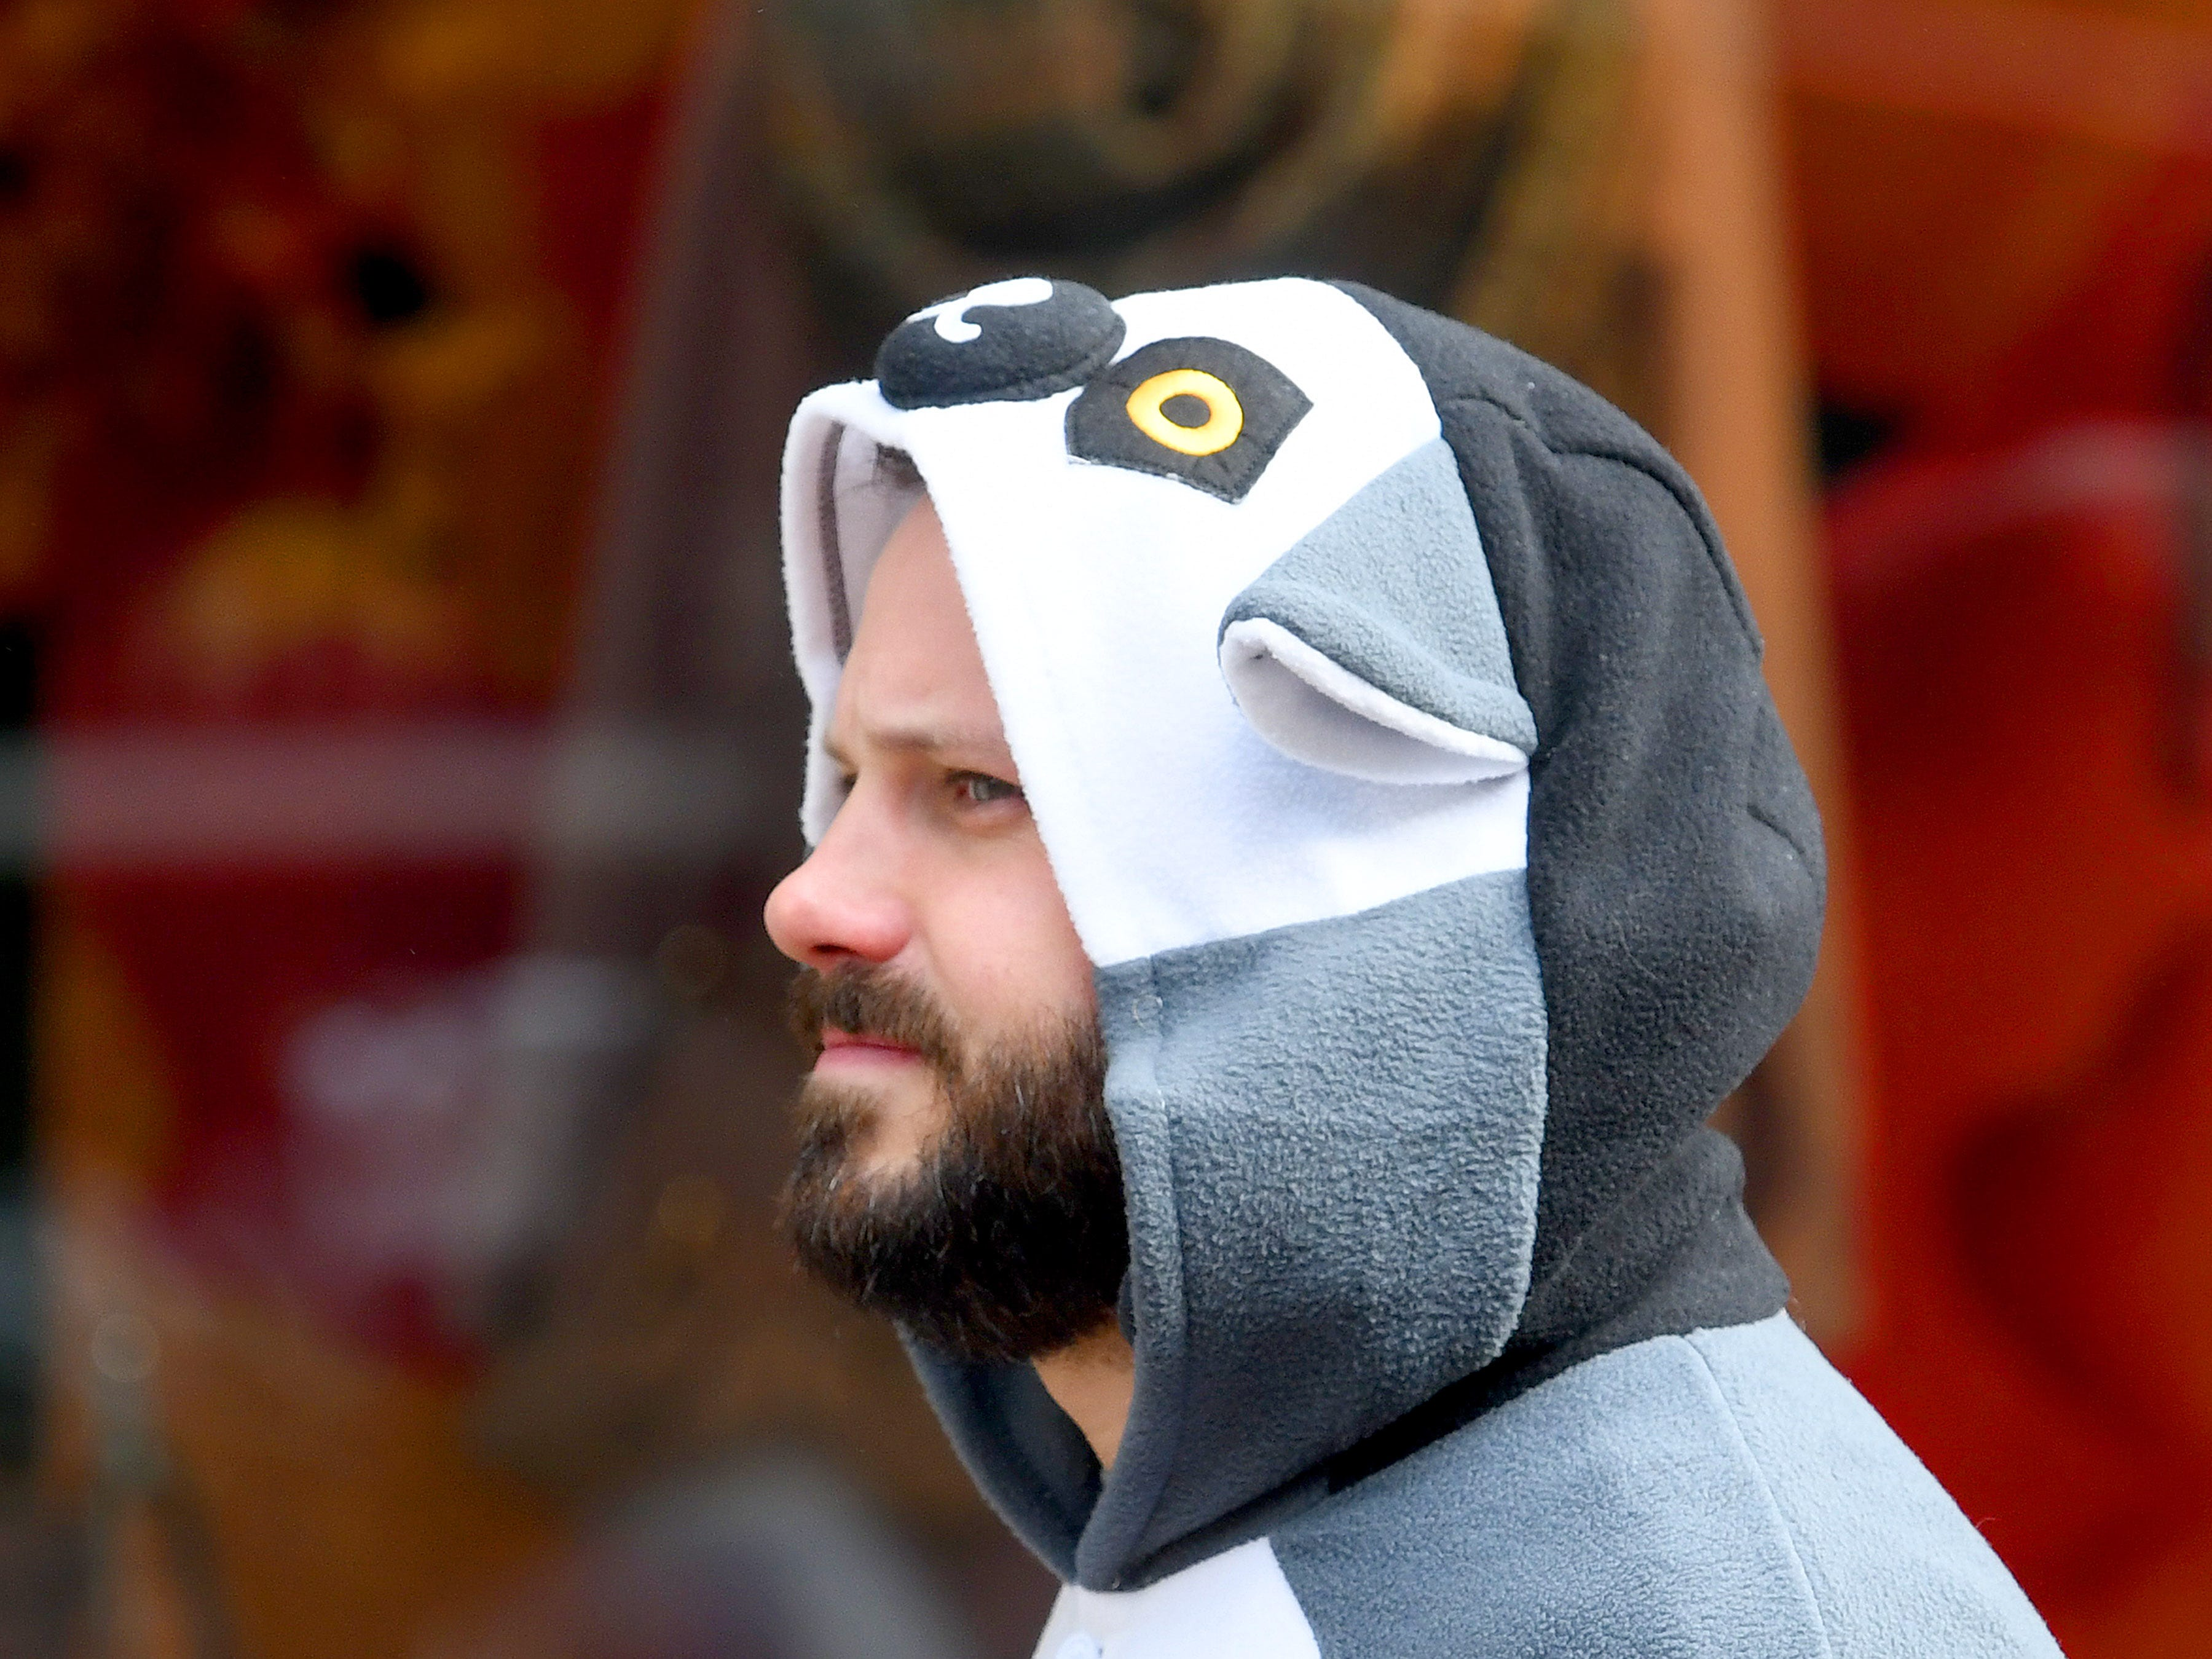 Kids aren't the only ones dressed in costumes during the annual downtown trick-or-treating event in Staunton on Saturday, Oct. 27, 2018.